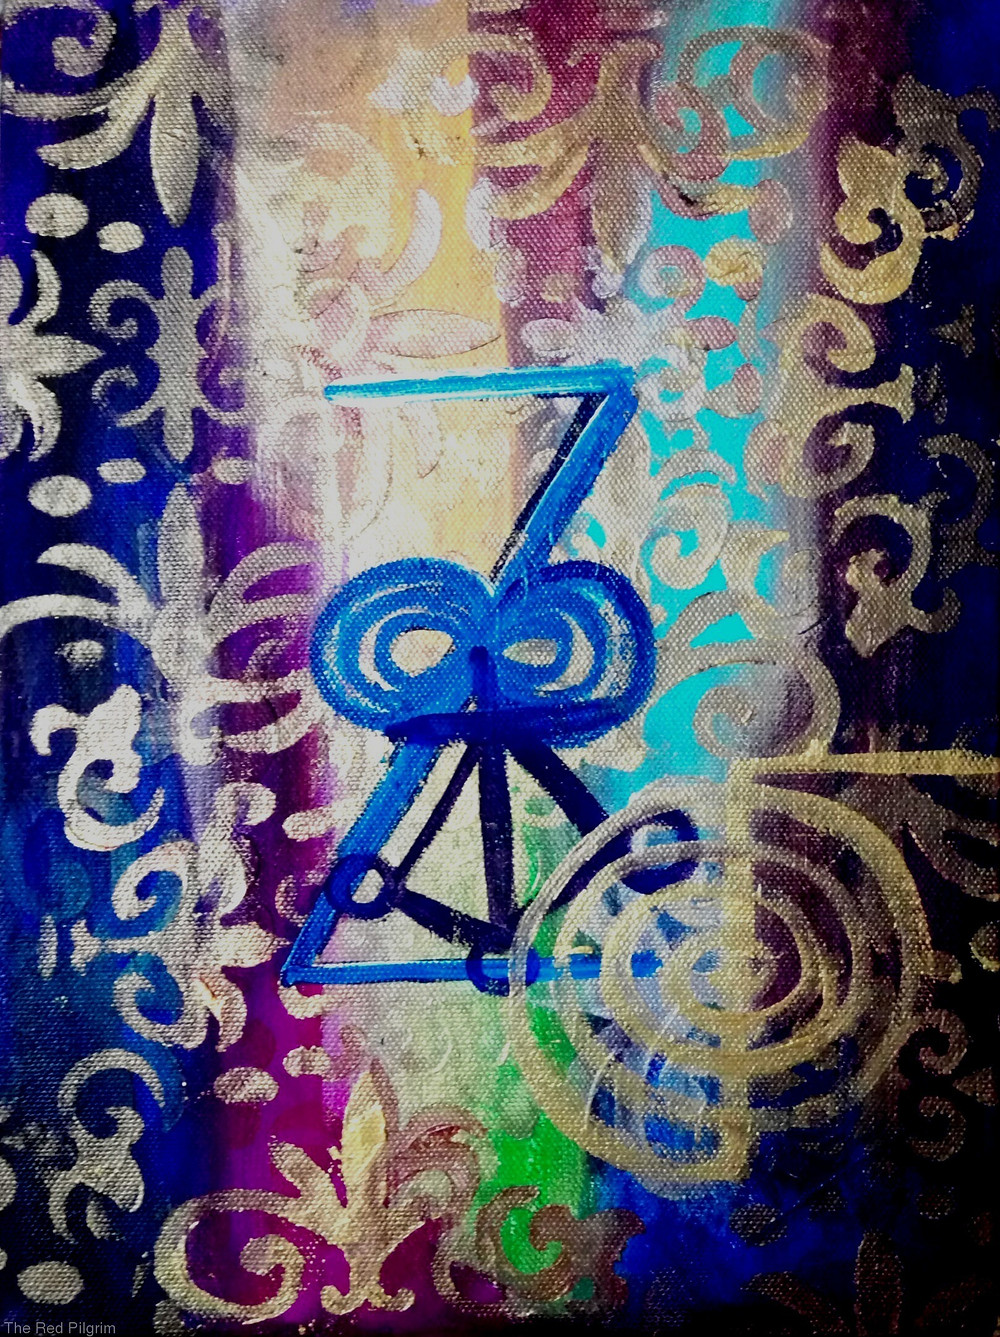 Untitled! Zonar abstract calligraphy healing painting